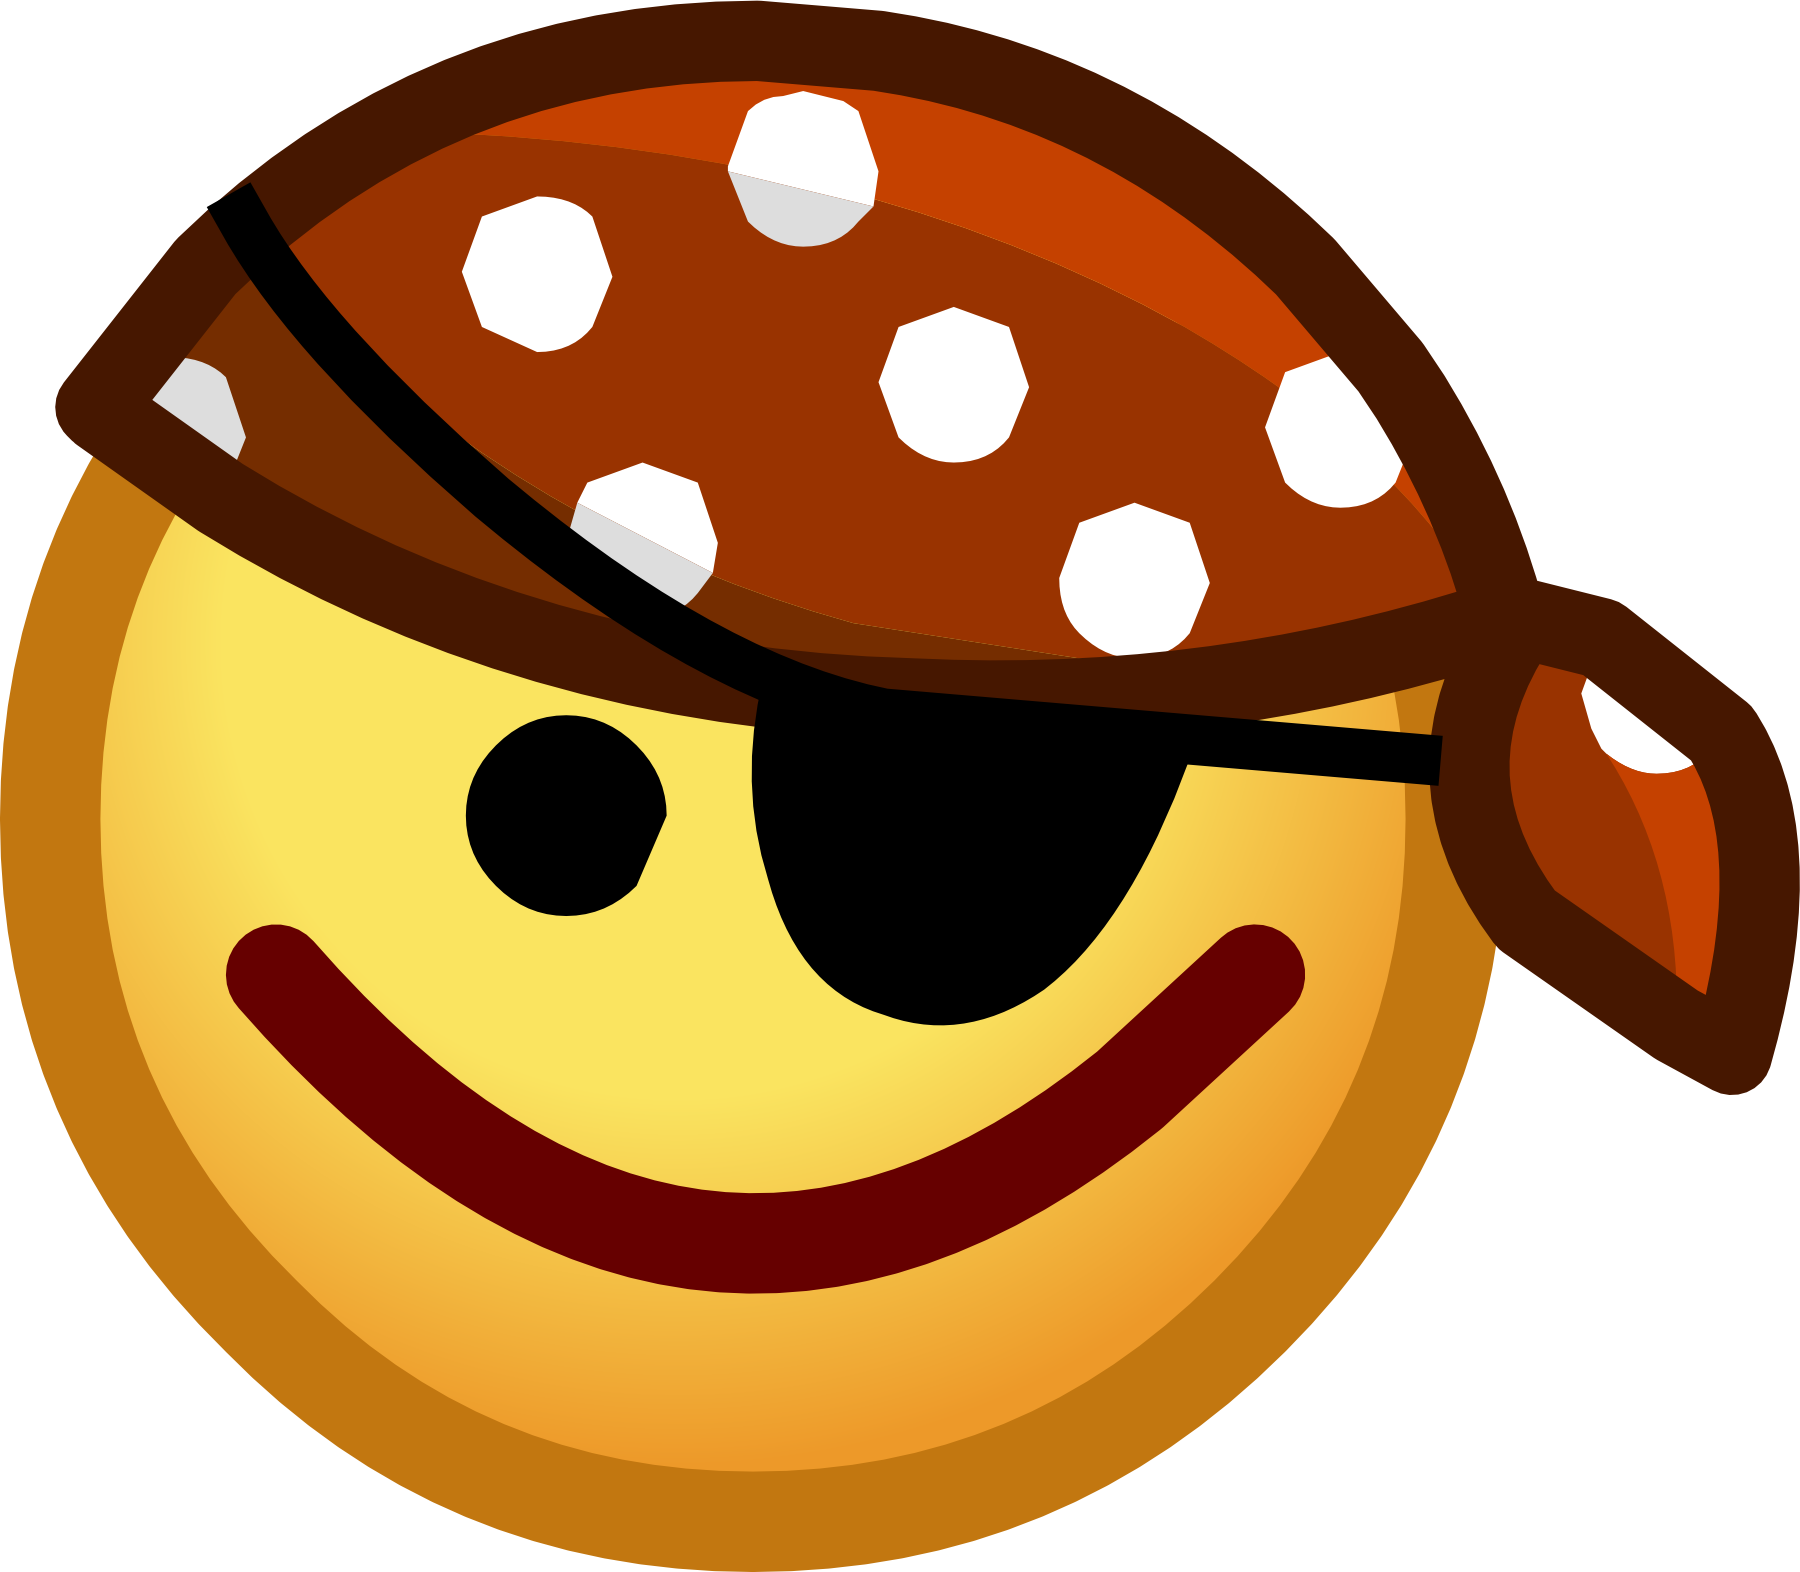 Apple emotions clipart image stock List of Emoticons | Club Penguin Wiki | FANDOM powered by Wikia image stock